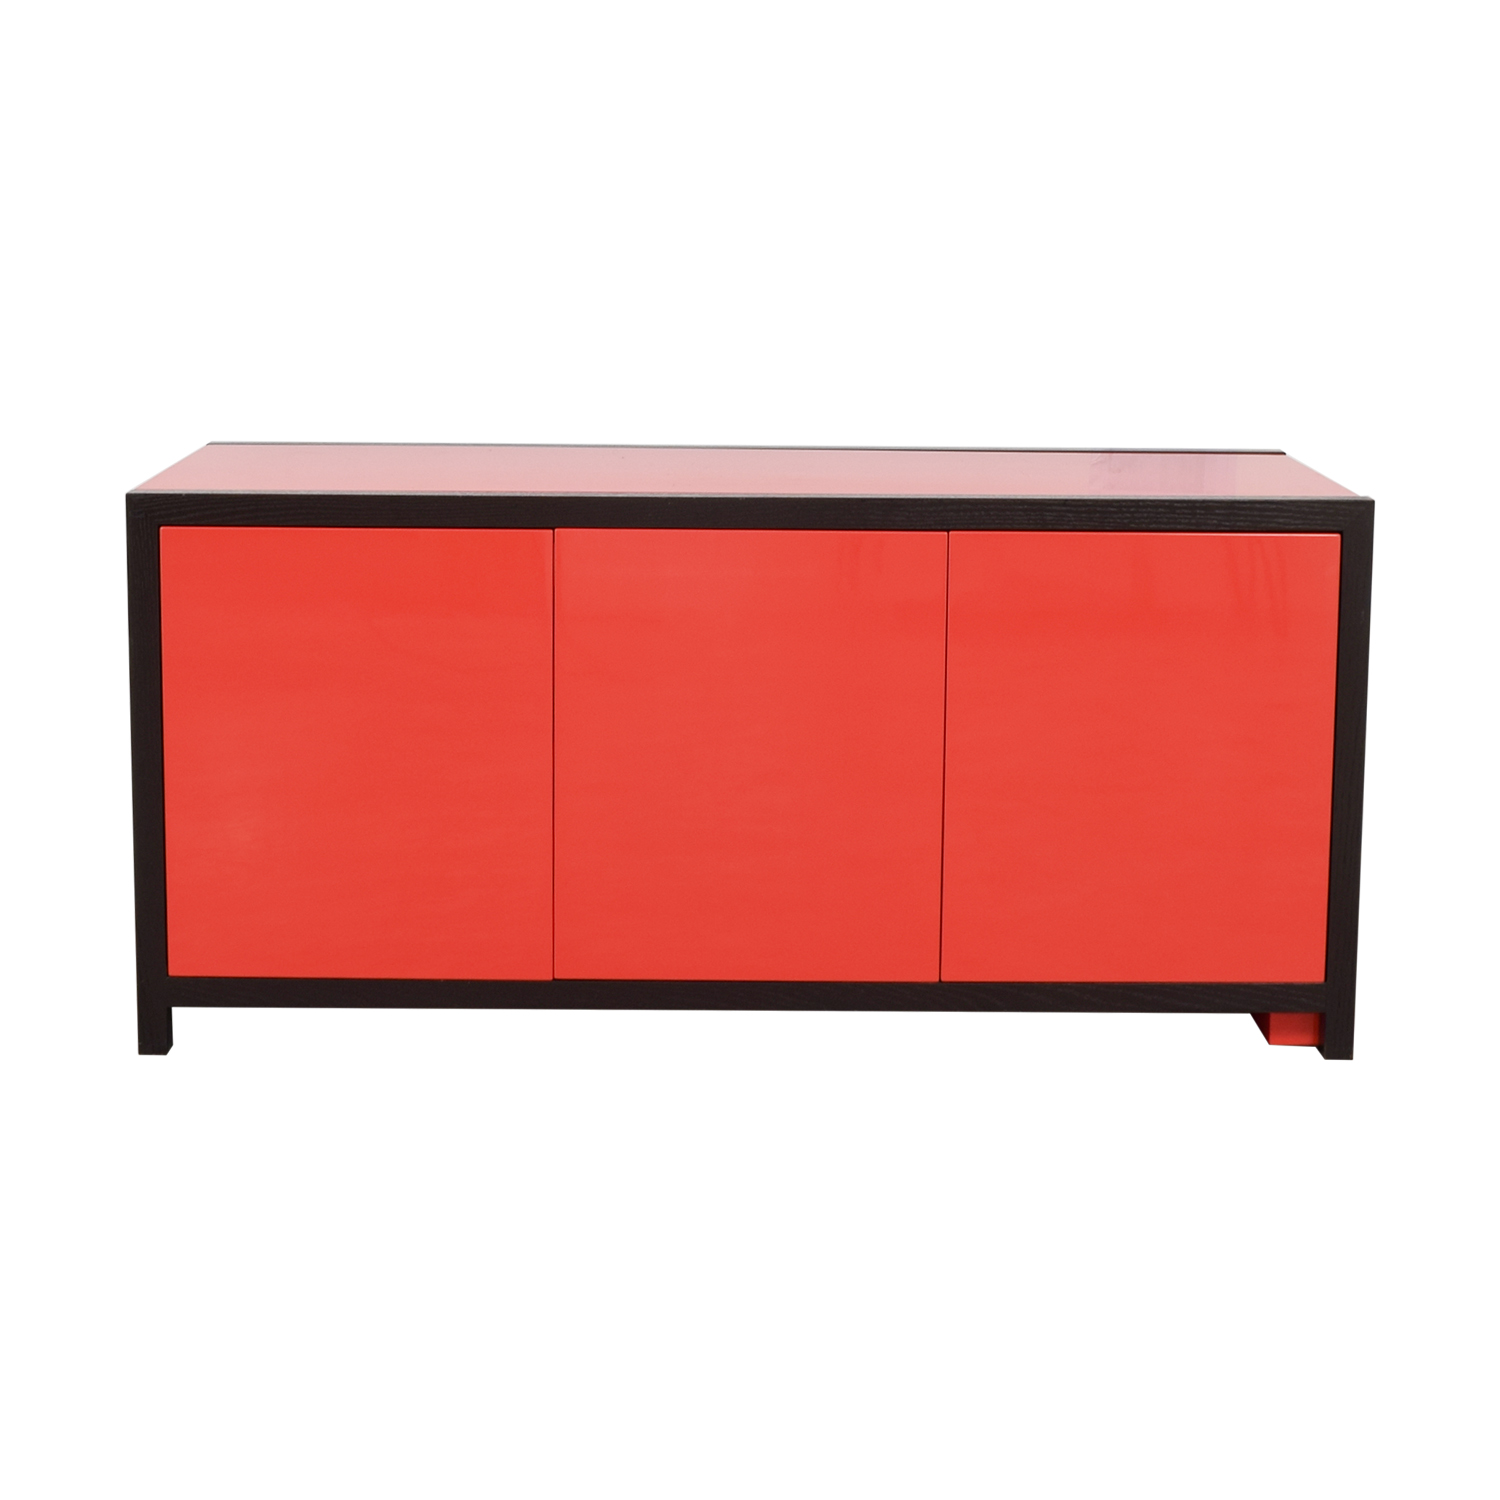 buy Dune Dune Modern Le Mans Black and Red Cabinet to Desk online